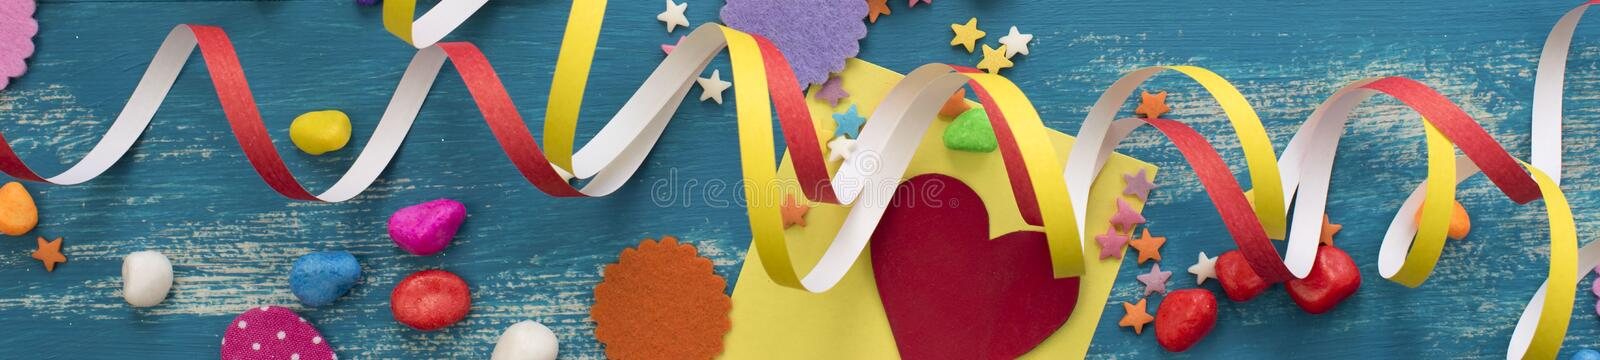 Banner Decorative holiday background with streamers confetti candy hearts decor. Blue shabby wooden top view background flat lay royalty free stock images